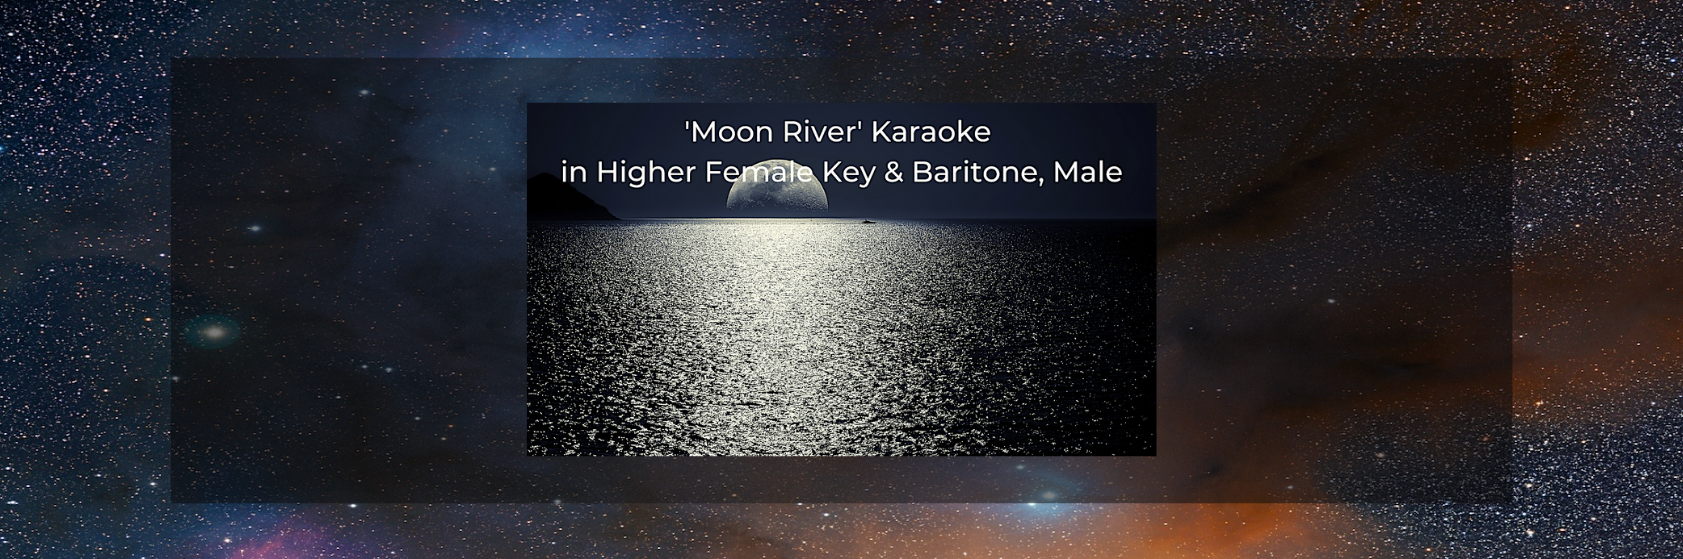 Moon River Karaoke in Higher Female Key and Baritone, Male